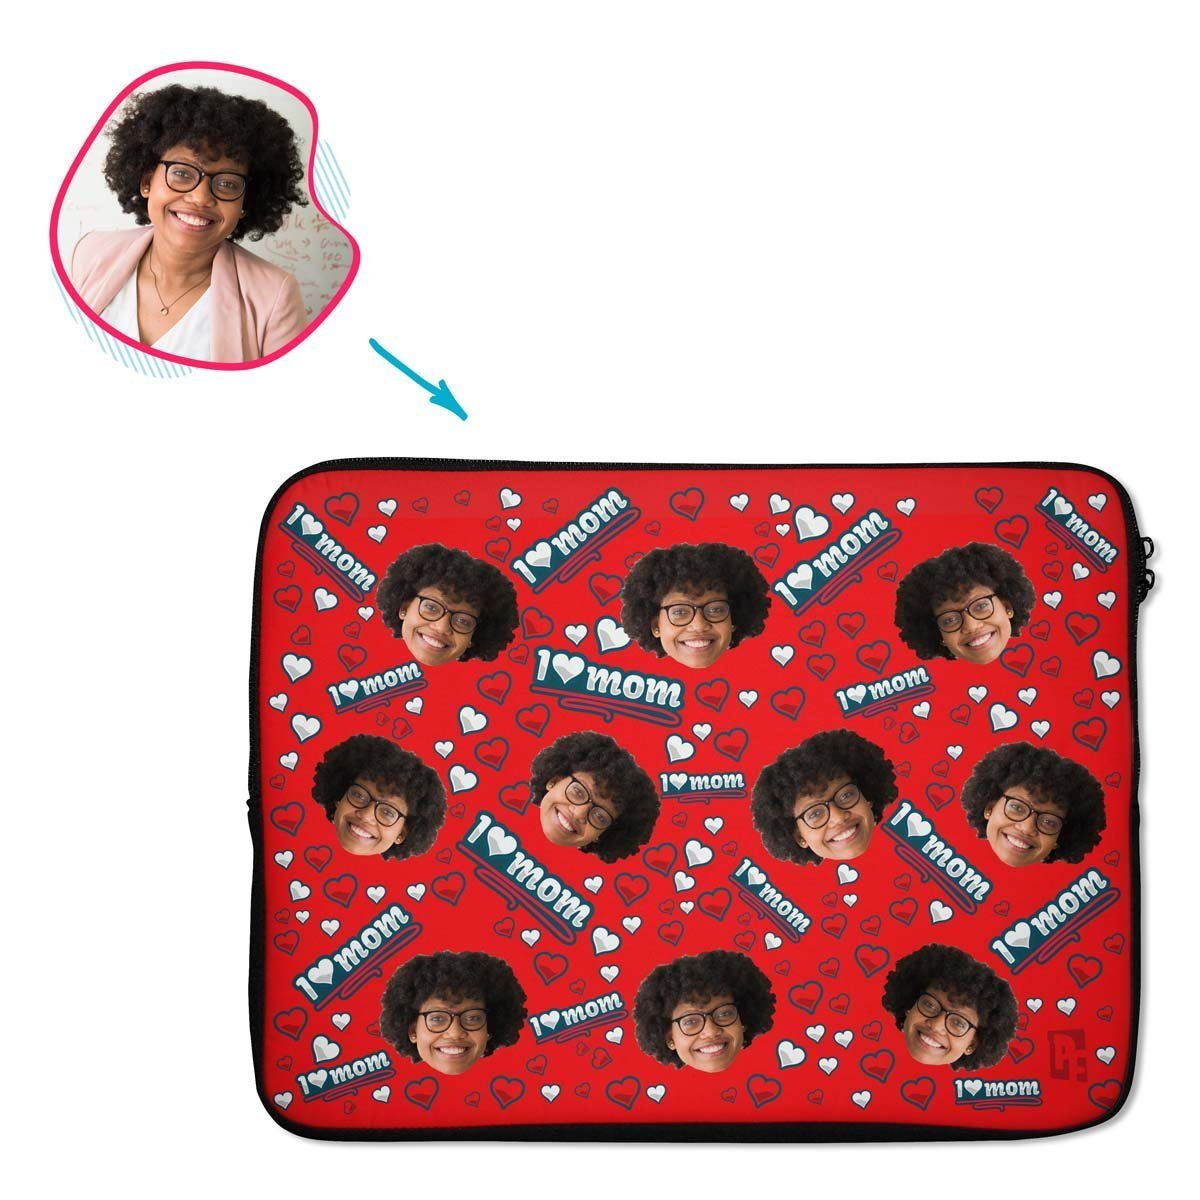 red Love Mom laptop sleeve personalized with photo of face printed on them